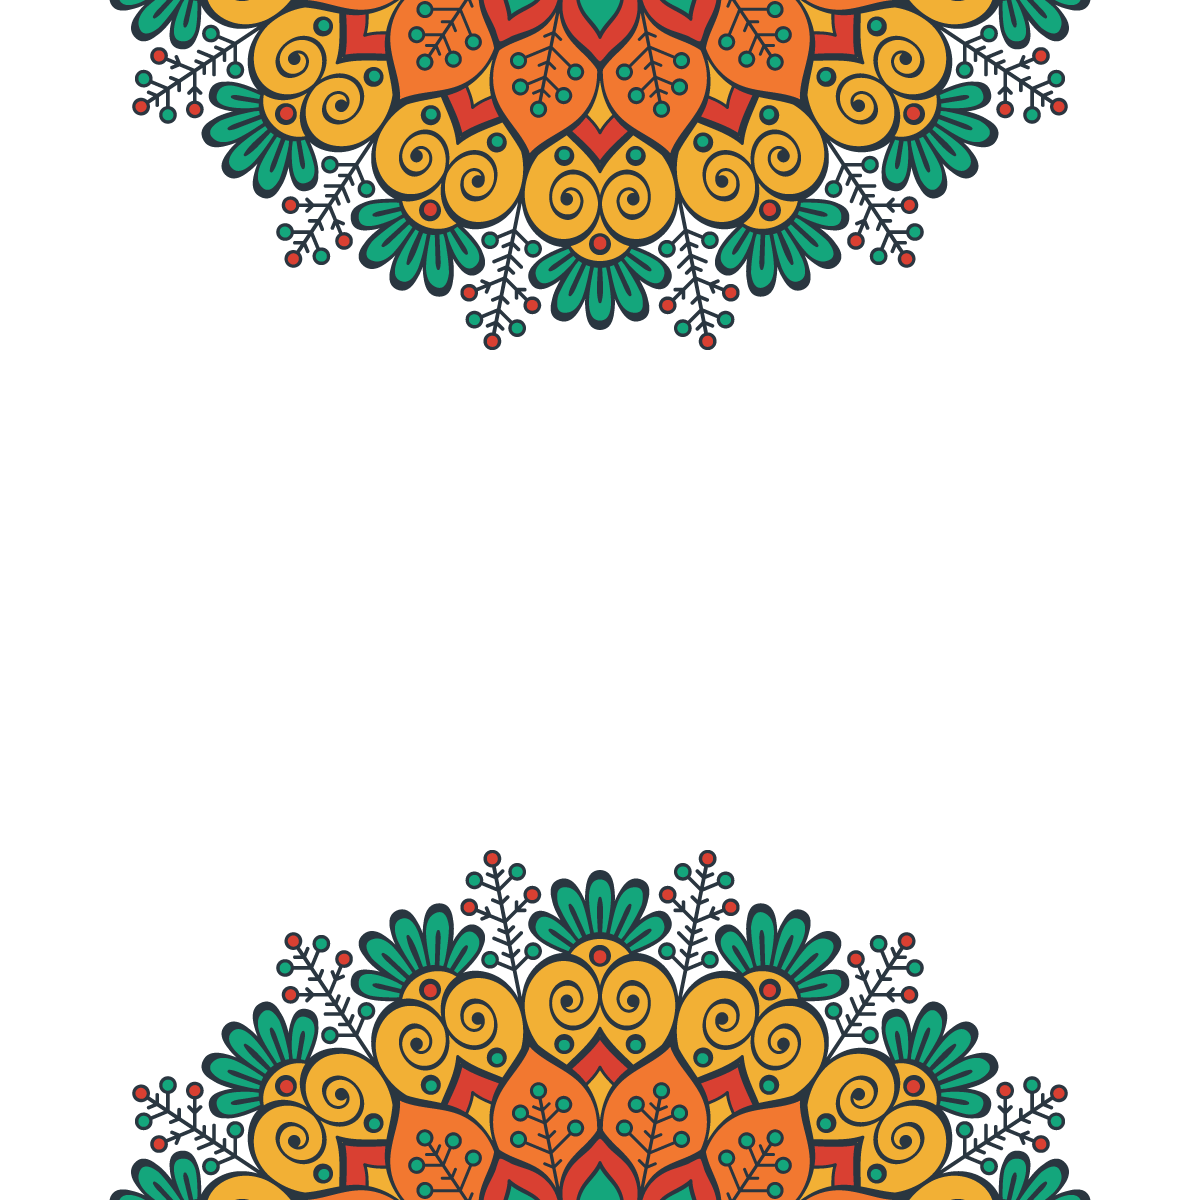 Festival Mandala Patterns Mandala Design Art Vector Background Pattern Mandala Pattern